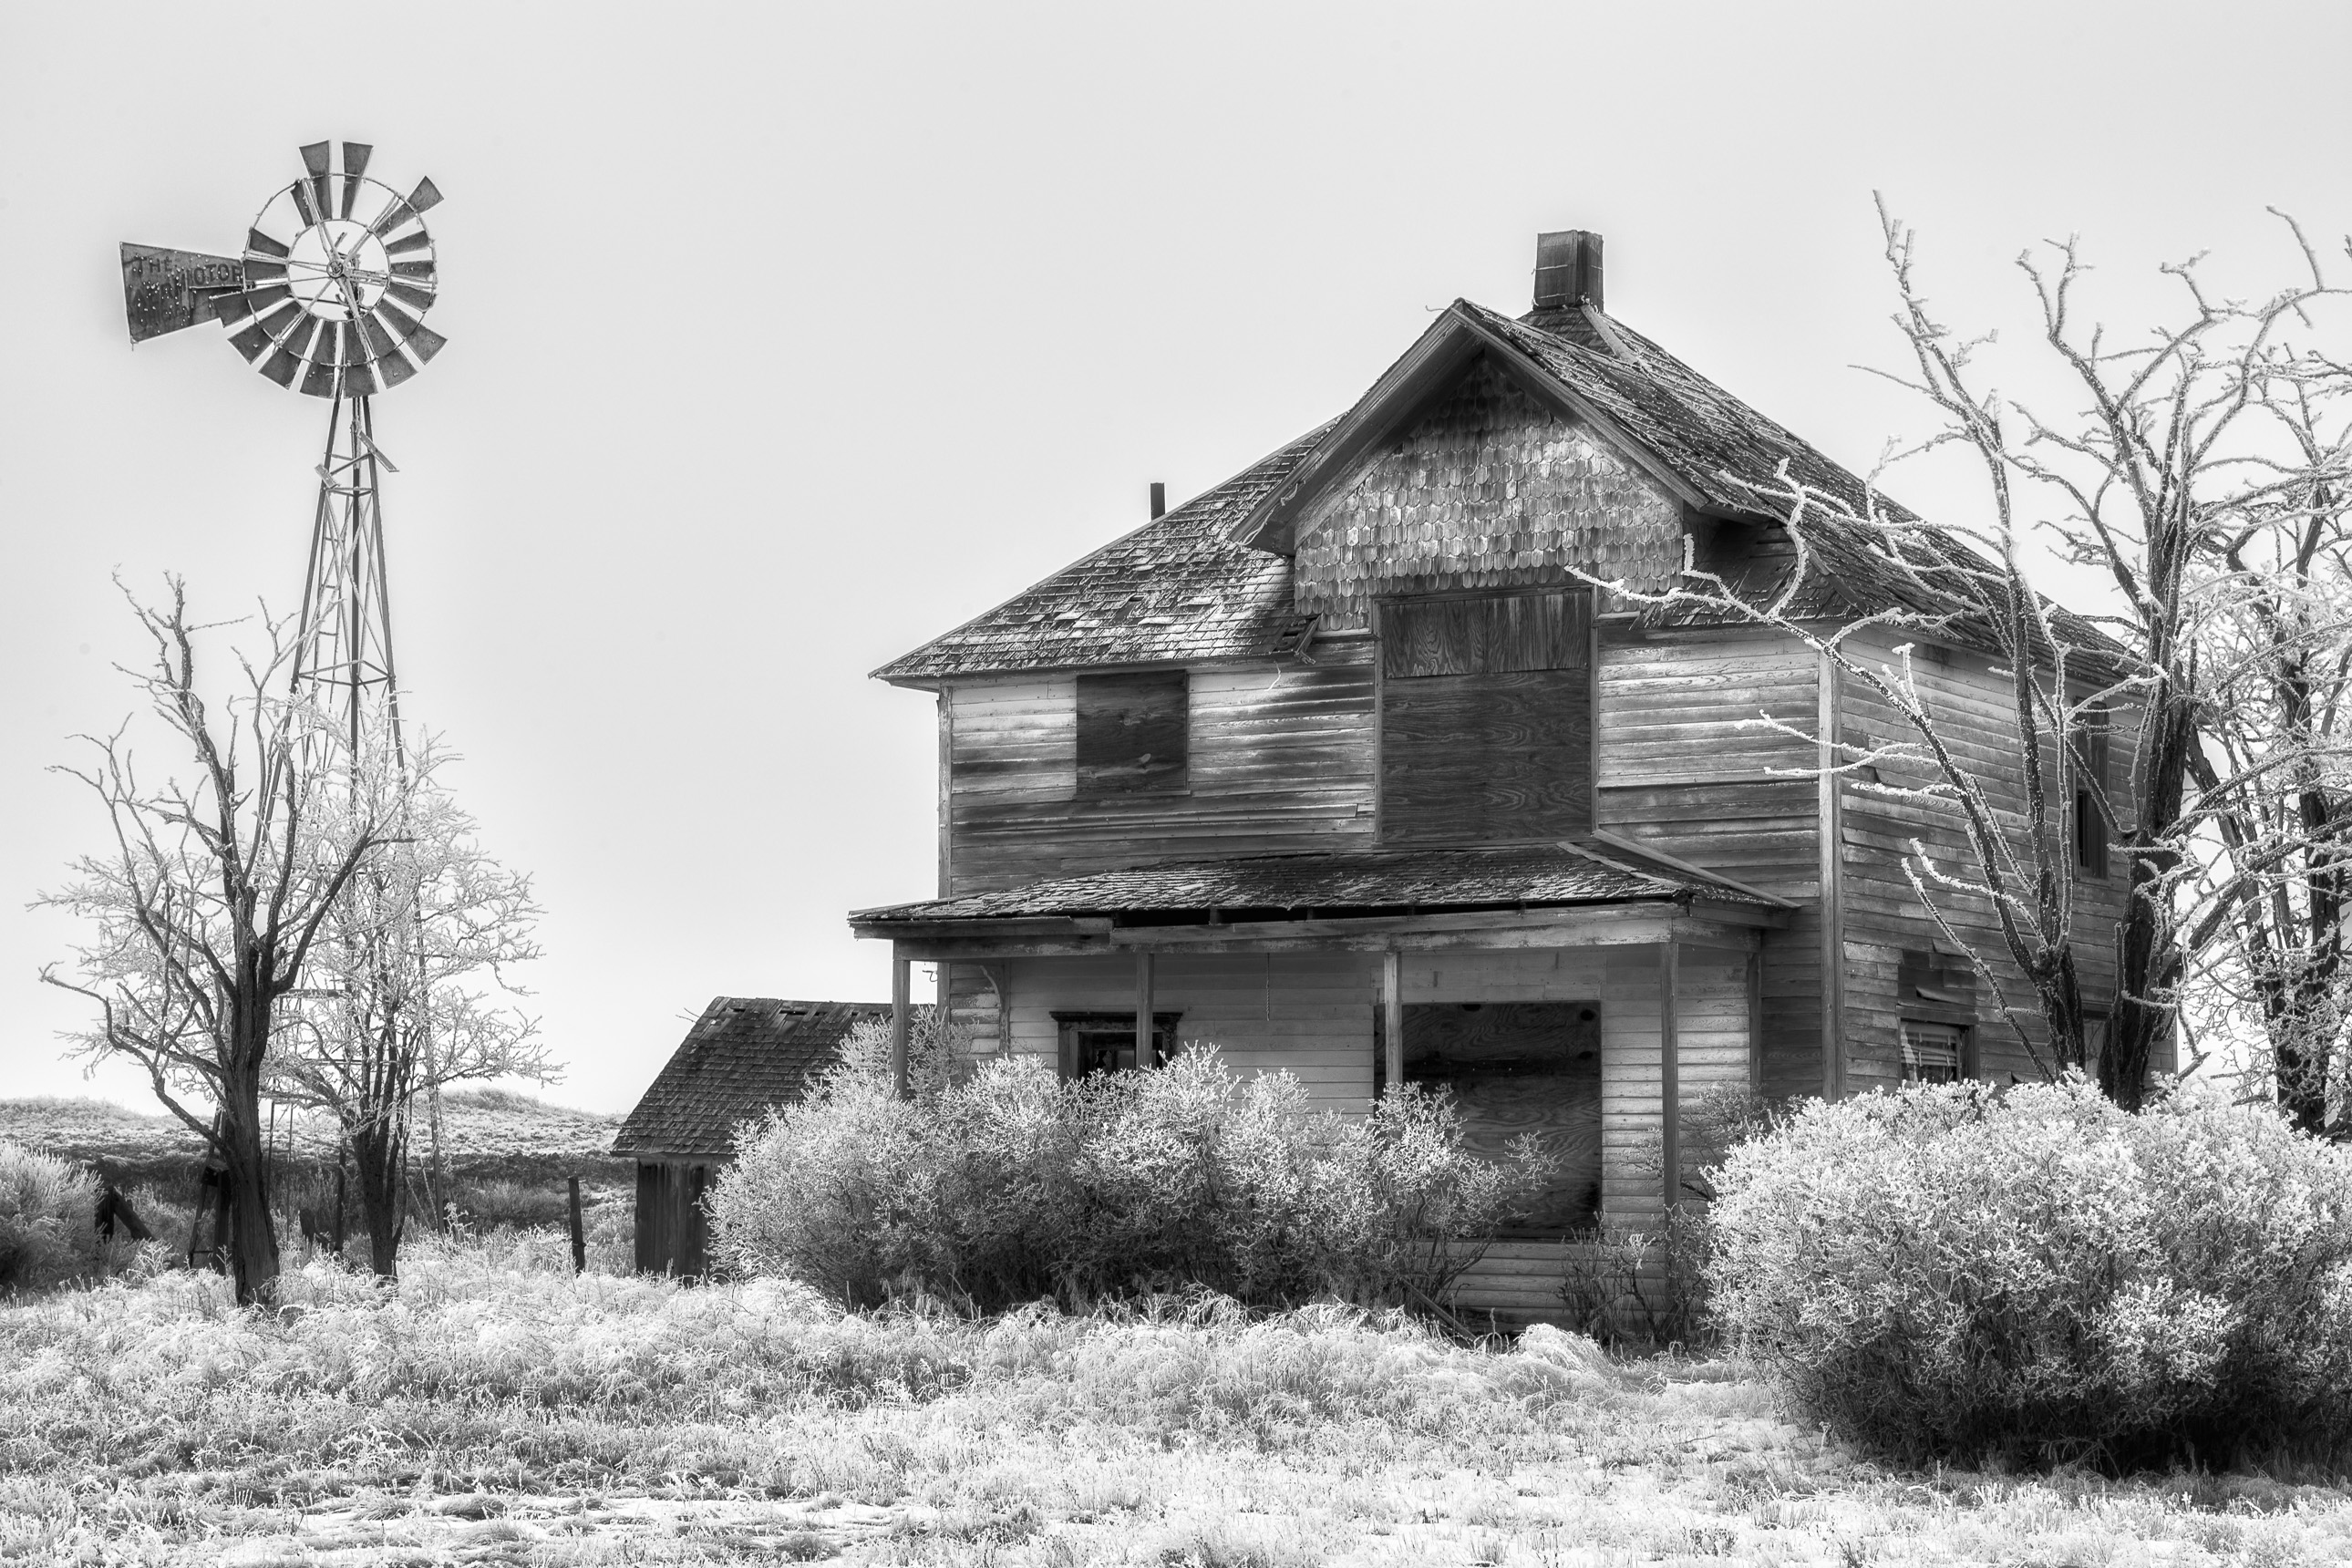 Abandoned house in the winter